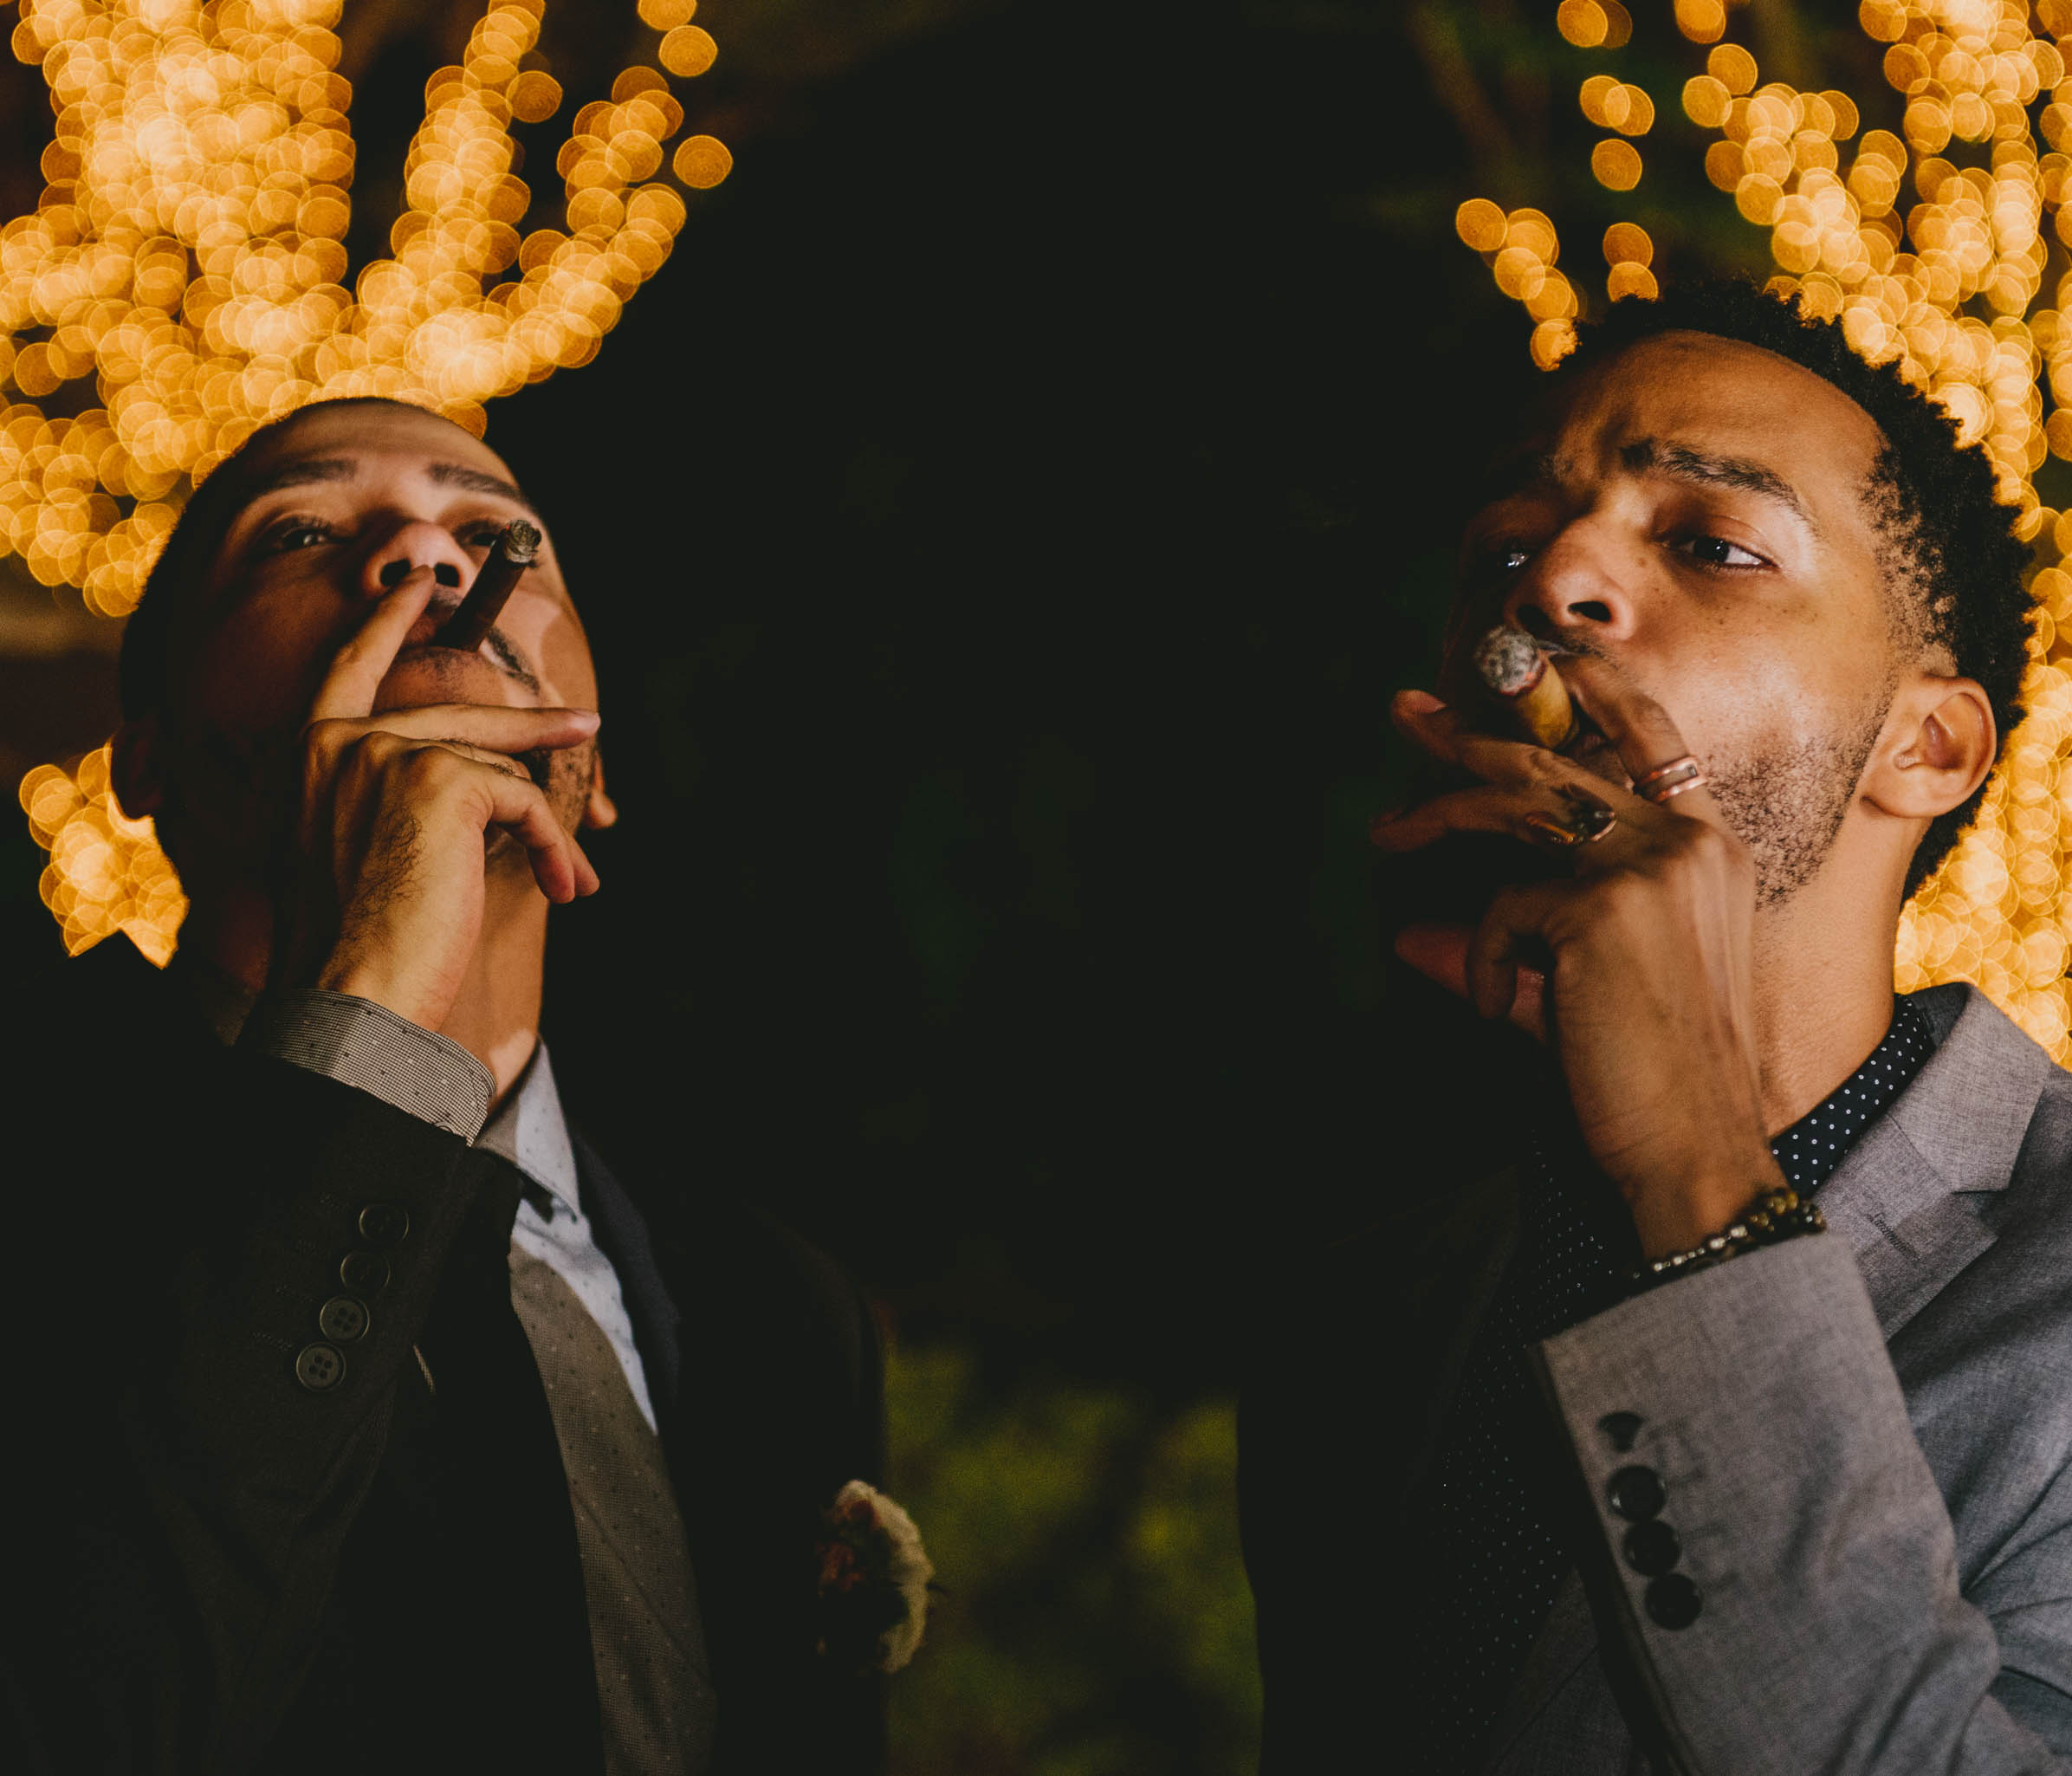 Two guests enjoy custom rolled cigars at this Umstead Hotel wedding